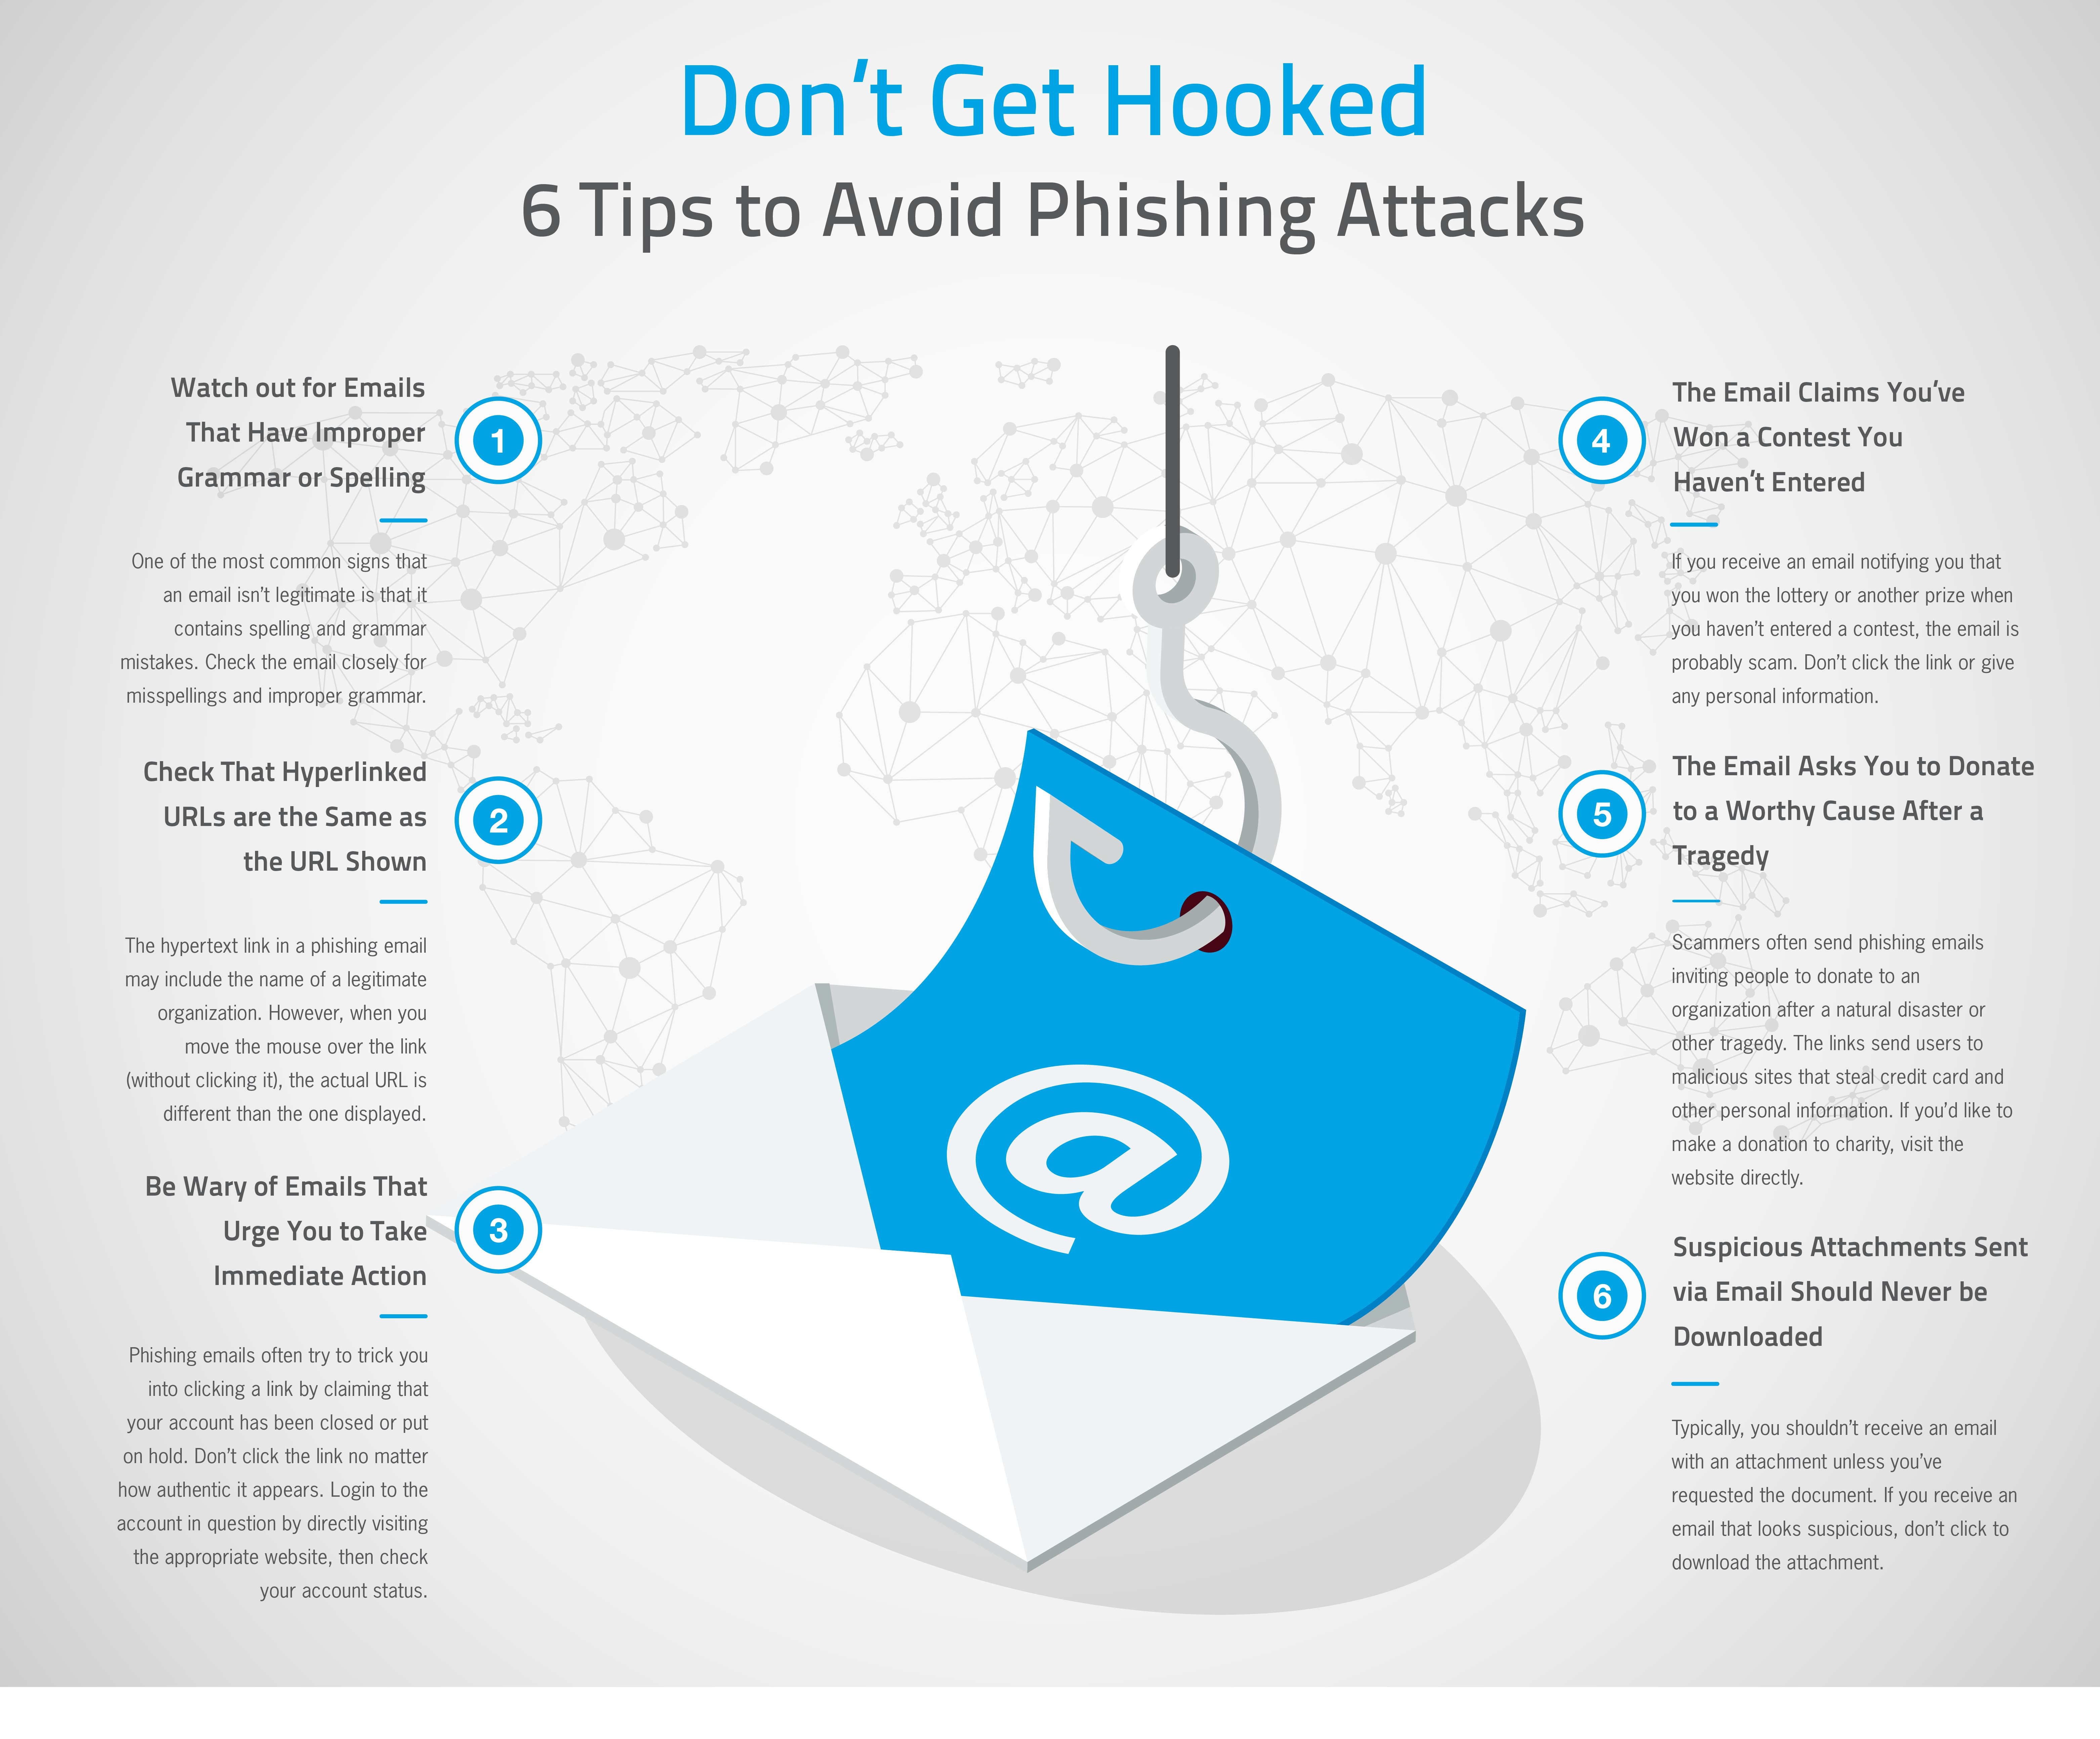 Don't Get Hooked - 6 Tips to Avoid Phishing Attacks